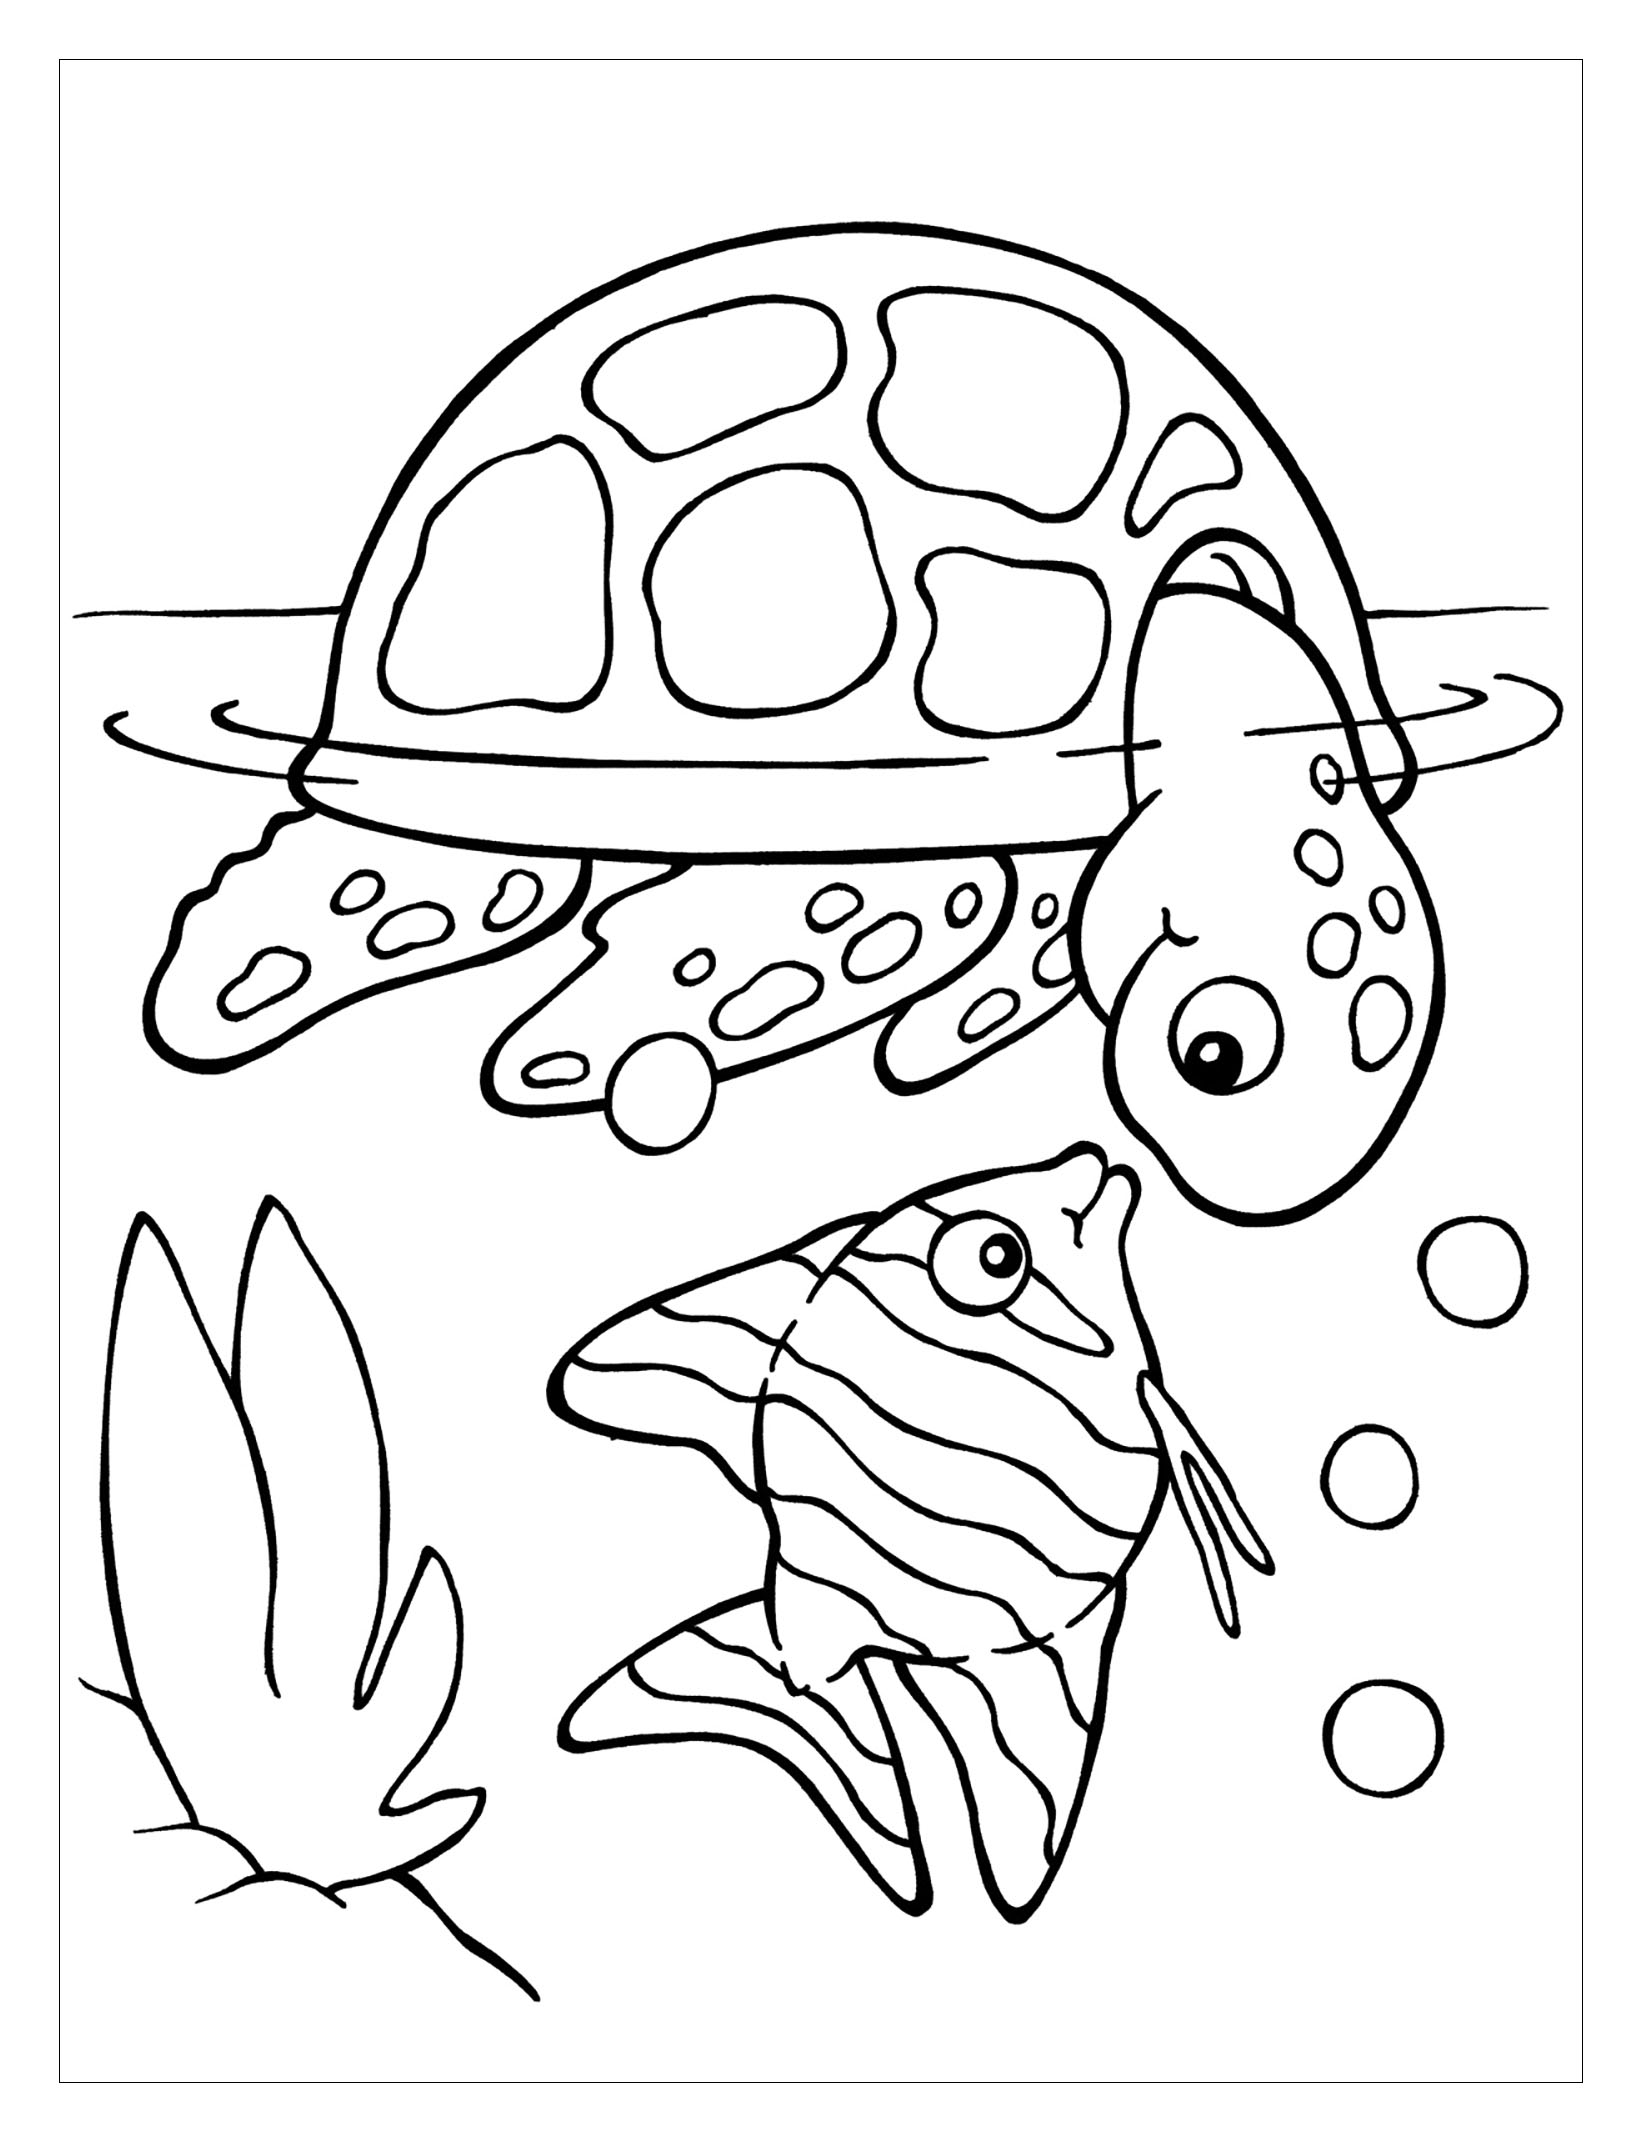 tortoise coloring page print download turtle coloring pages as the tortoise page coloring